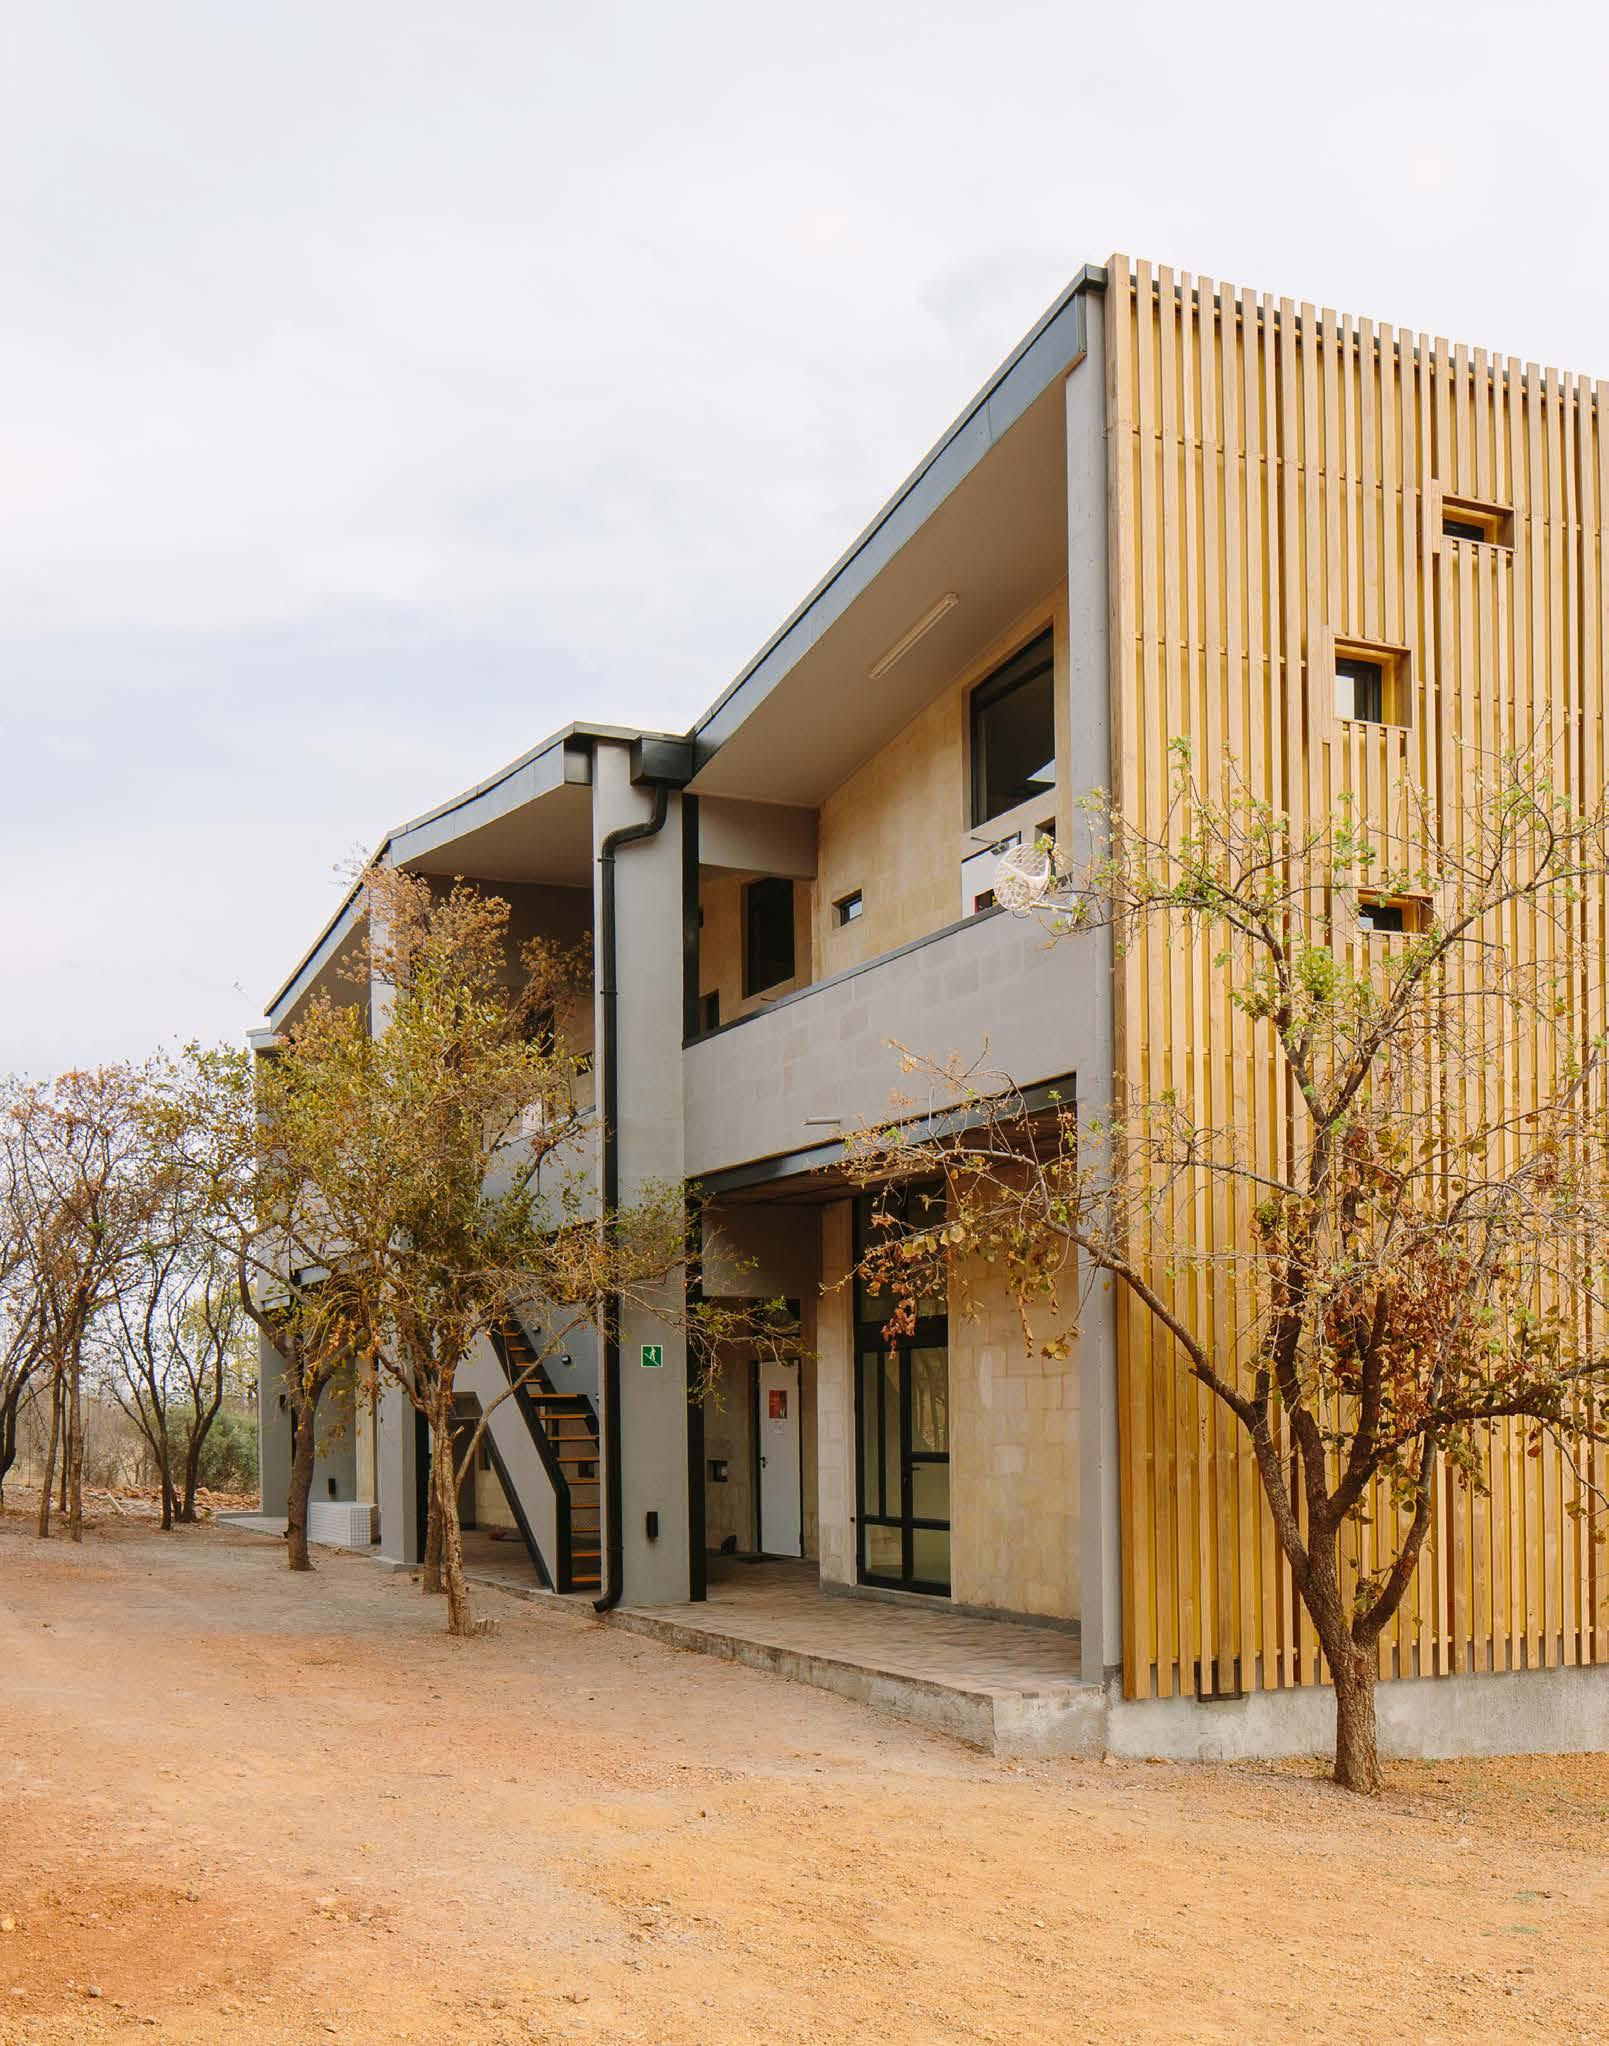 Page 52 of Limpopo Youth Hostel: Rural Reinvention